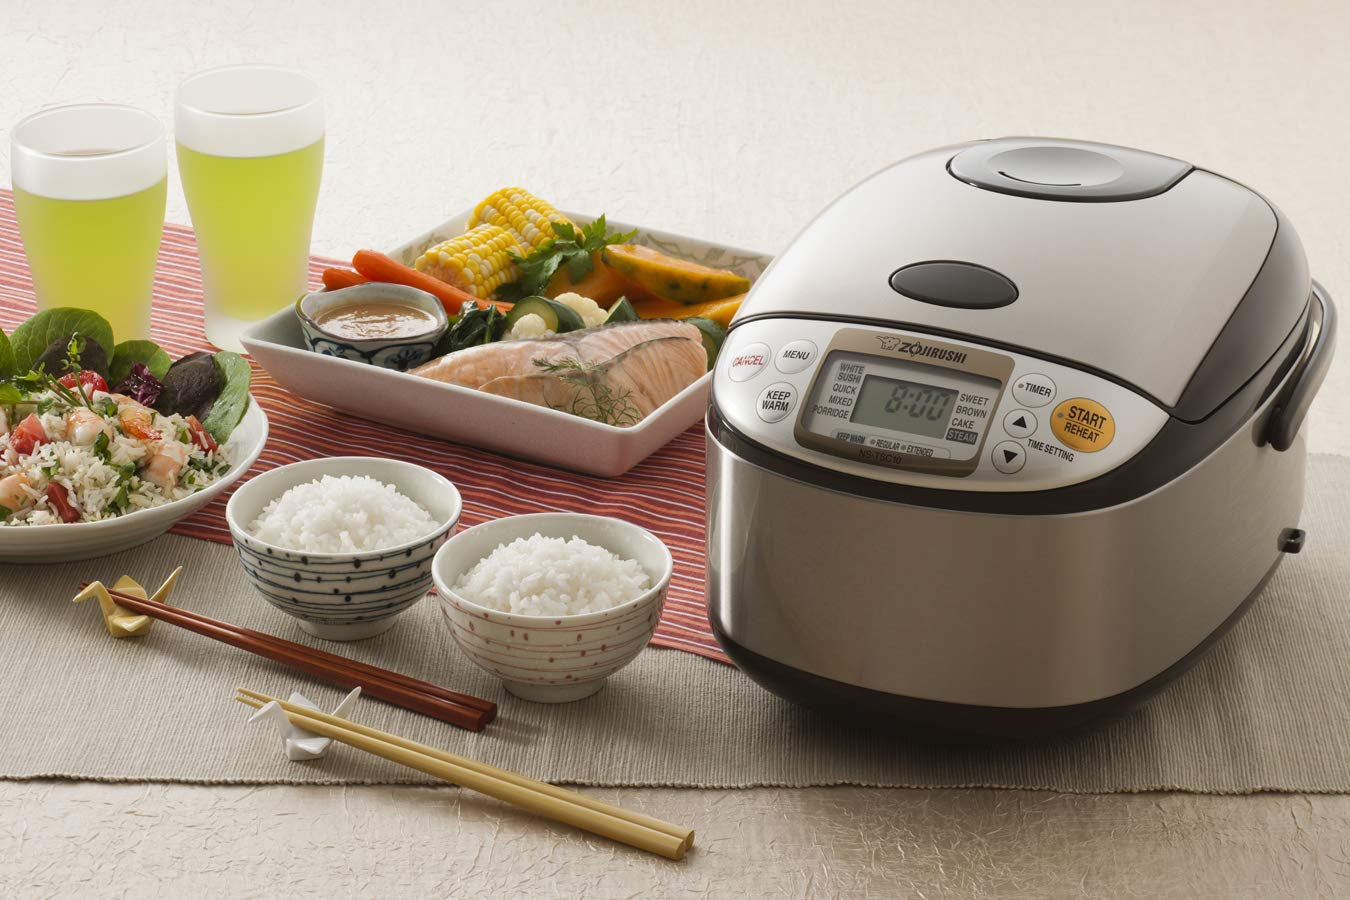 Rice cooker with two bowls of rice